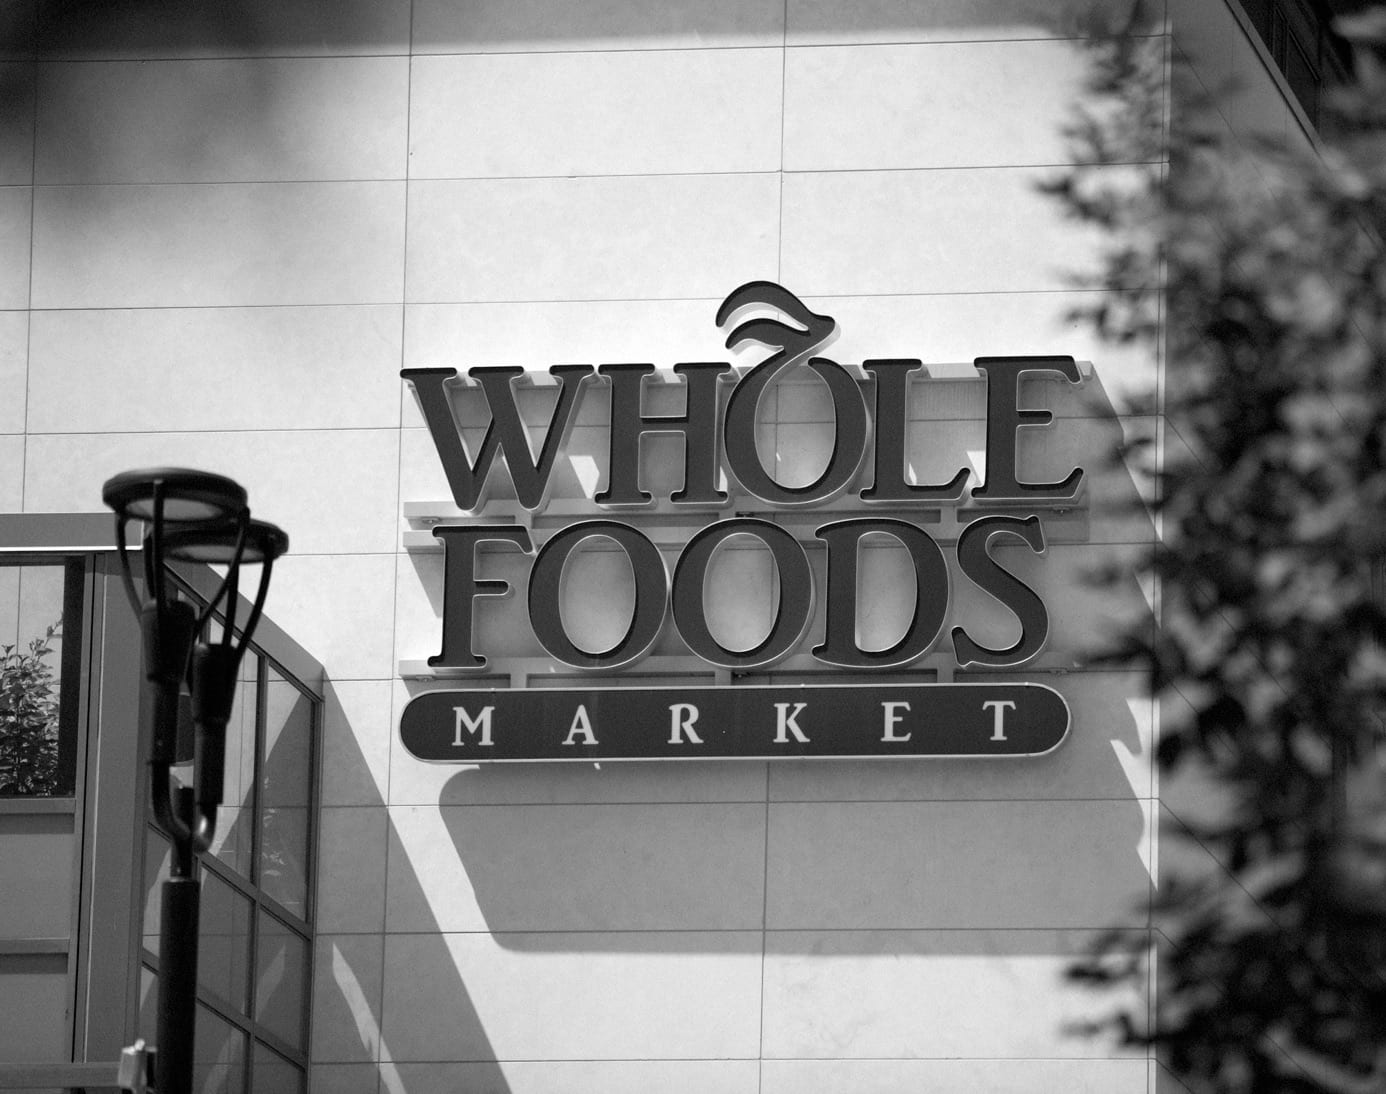 Signage for Whole Foods Market.